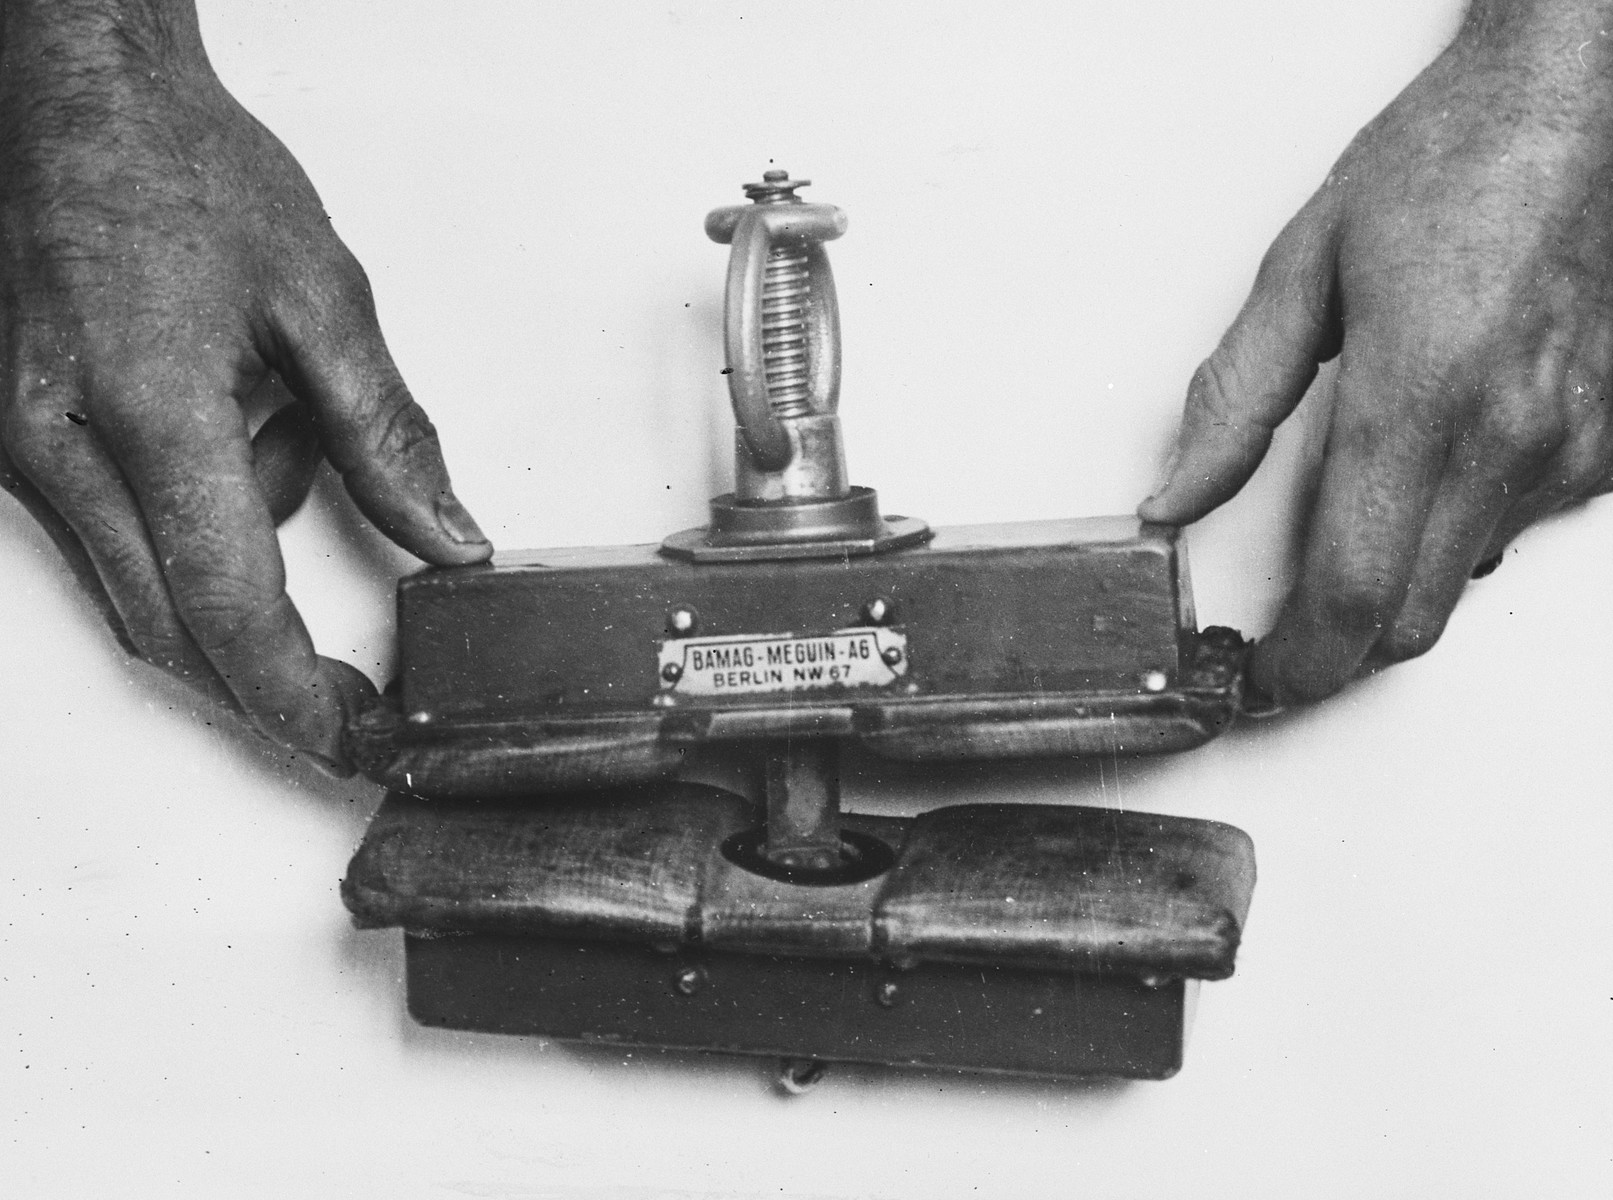 "Demonstation of an instrument used to crush fingers in the Breendonck concentration camp.  The original caption reads, ""The above photograph shows an instrument which the Germans used as a finger-press.  It was discovered at the German Soldatenheim, 47 Chausee de Mons, SOIGNIES by Mlle Rosette Christieans.  The instrument was shown to Madame Pacquet who had her fingers crushed until her nails came off.  She identified it as identical with the instrument which the Germans had used to torture her in Breendonk. The moment she saw it she said, ""Take it away.  I never want to see it again."""